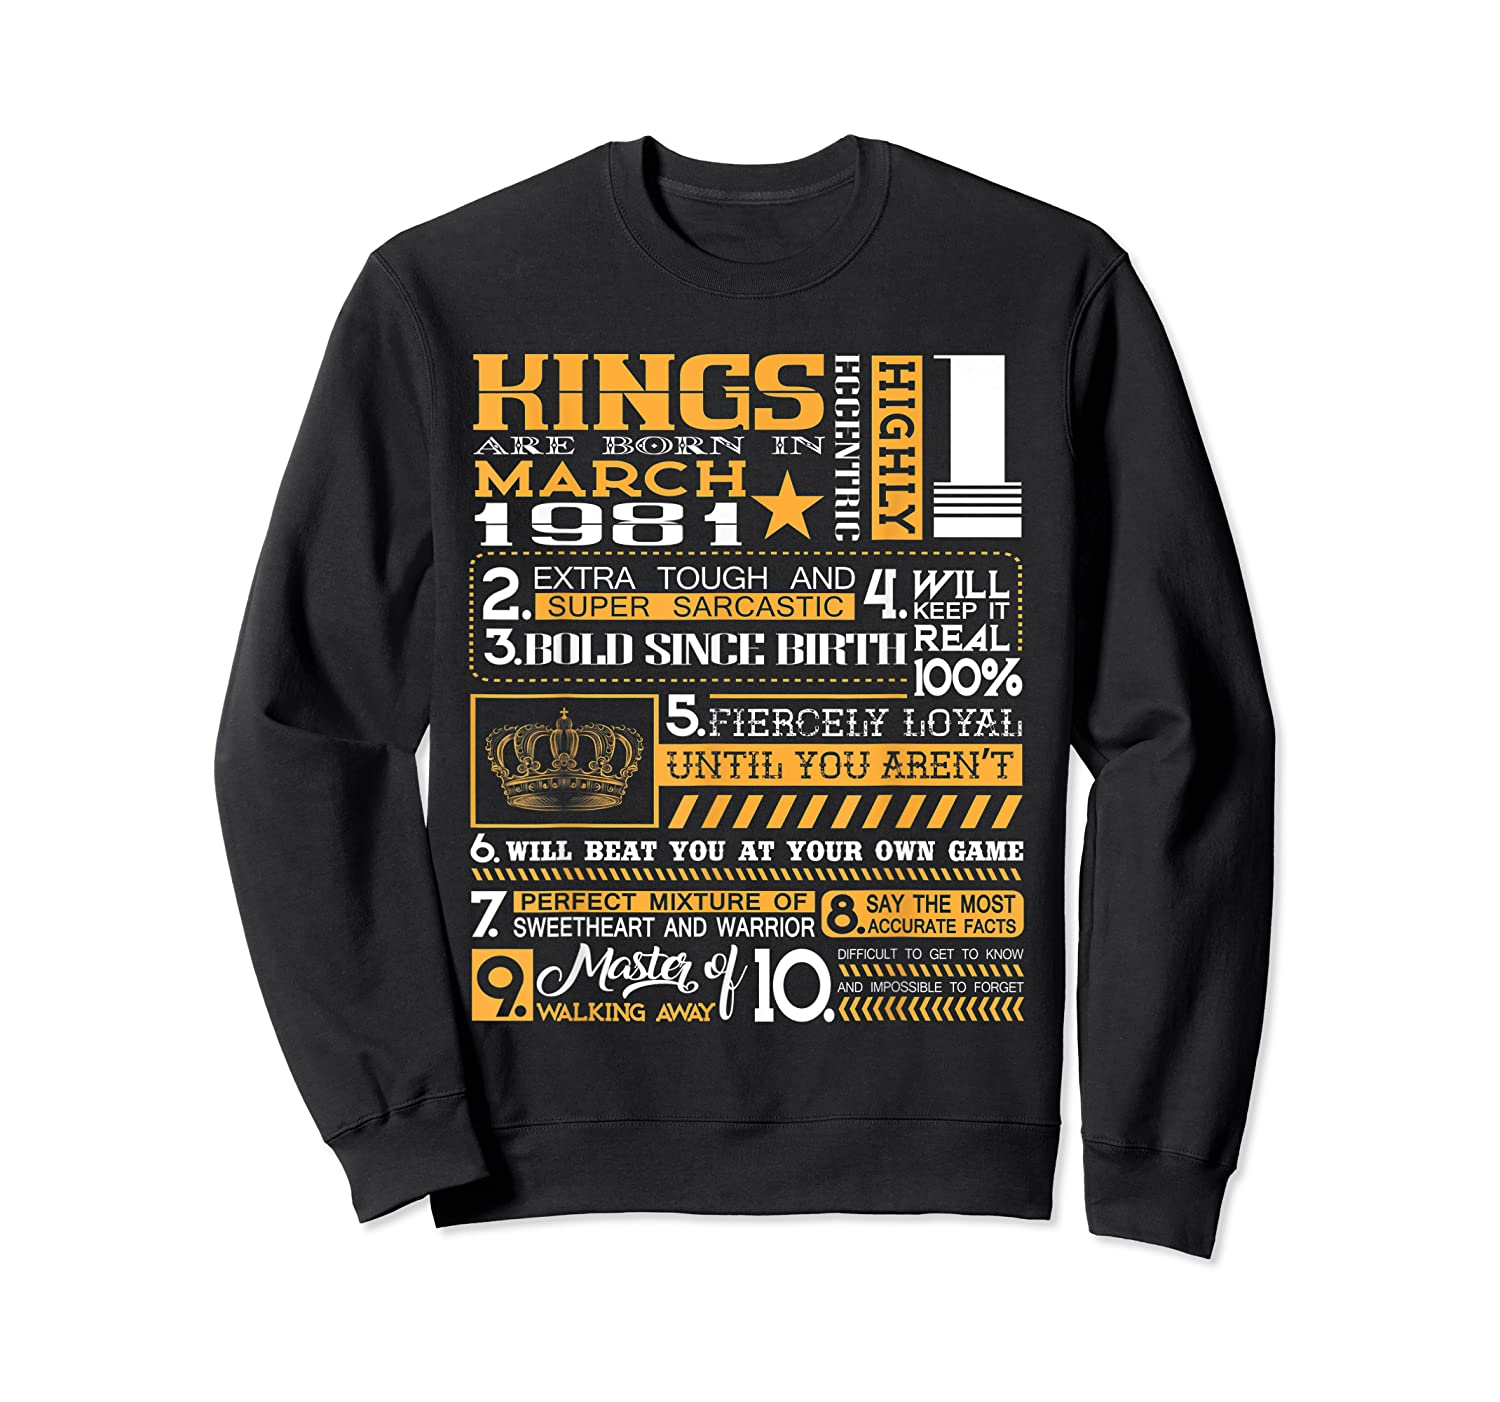 39th Birthday Gift Kings Born In March 1981 39 Years Old Shirts Crewneck Sweater